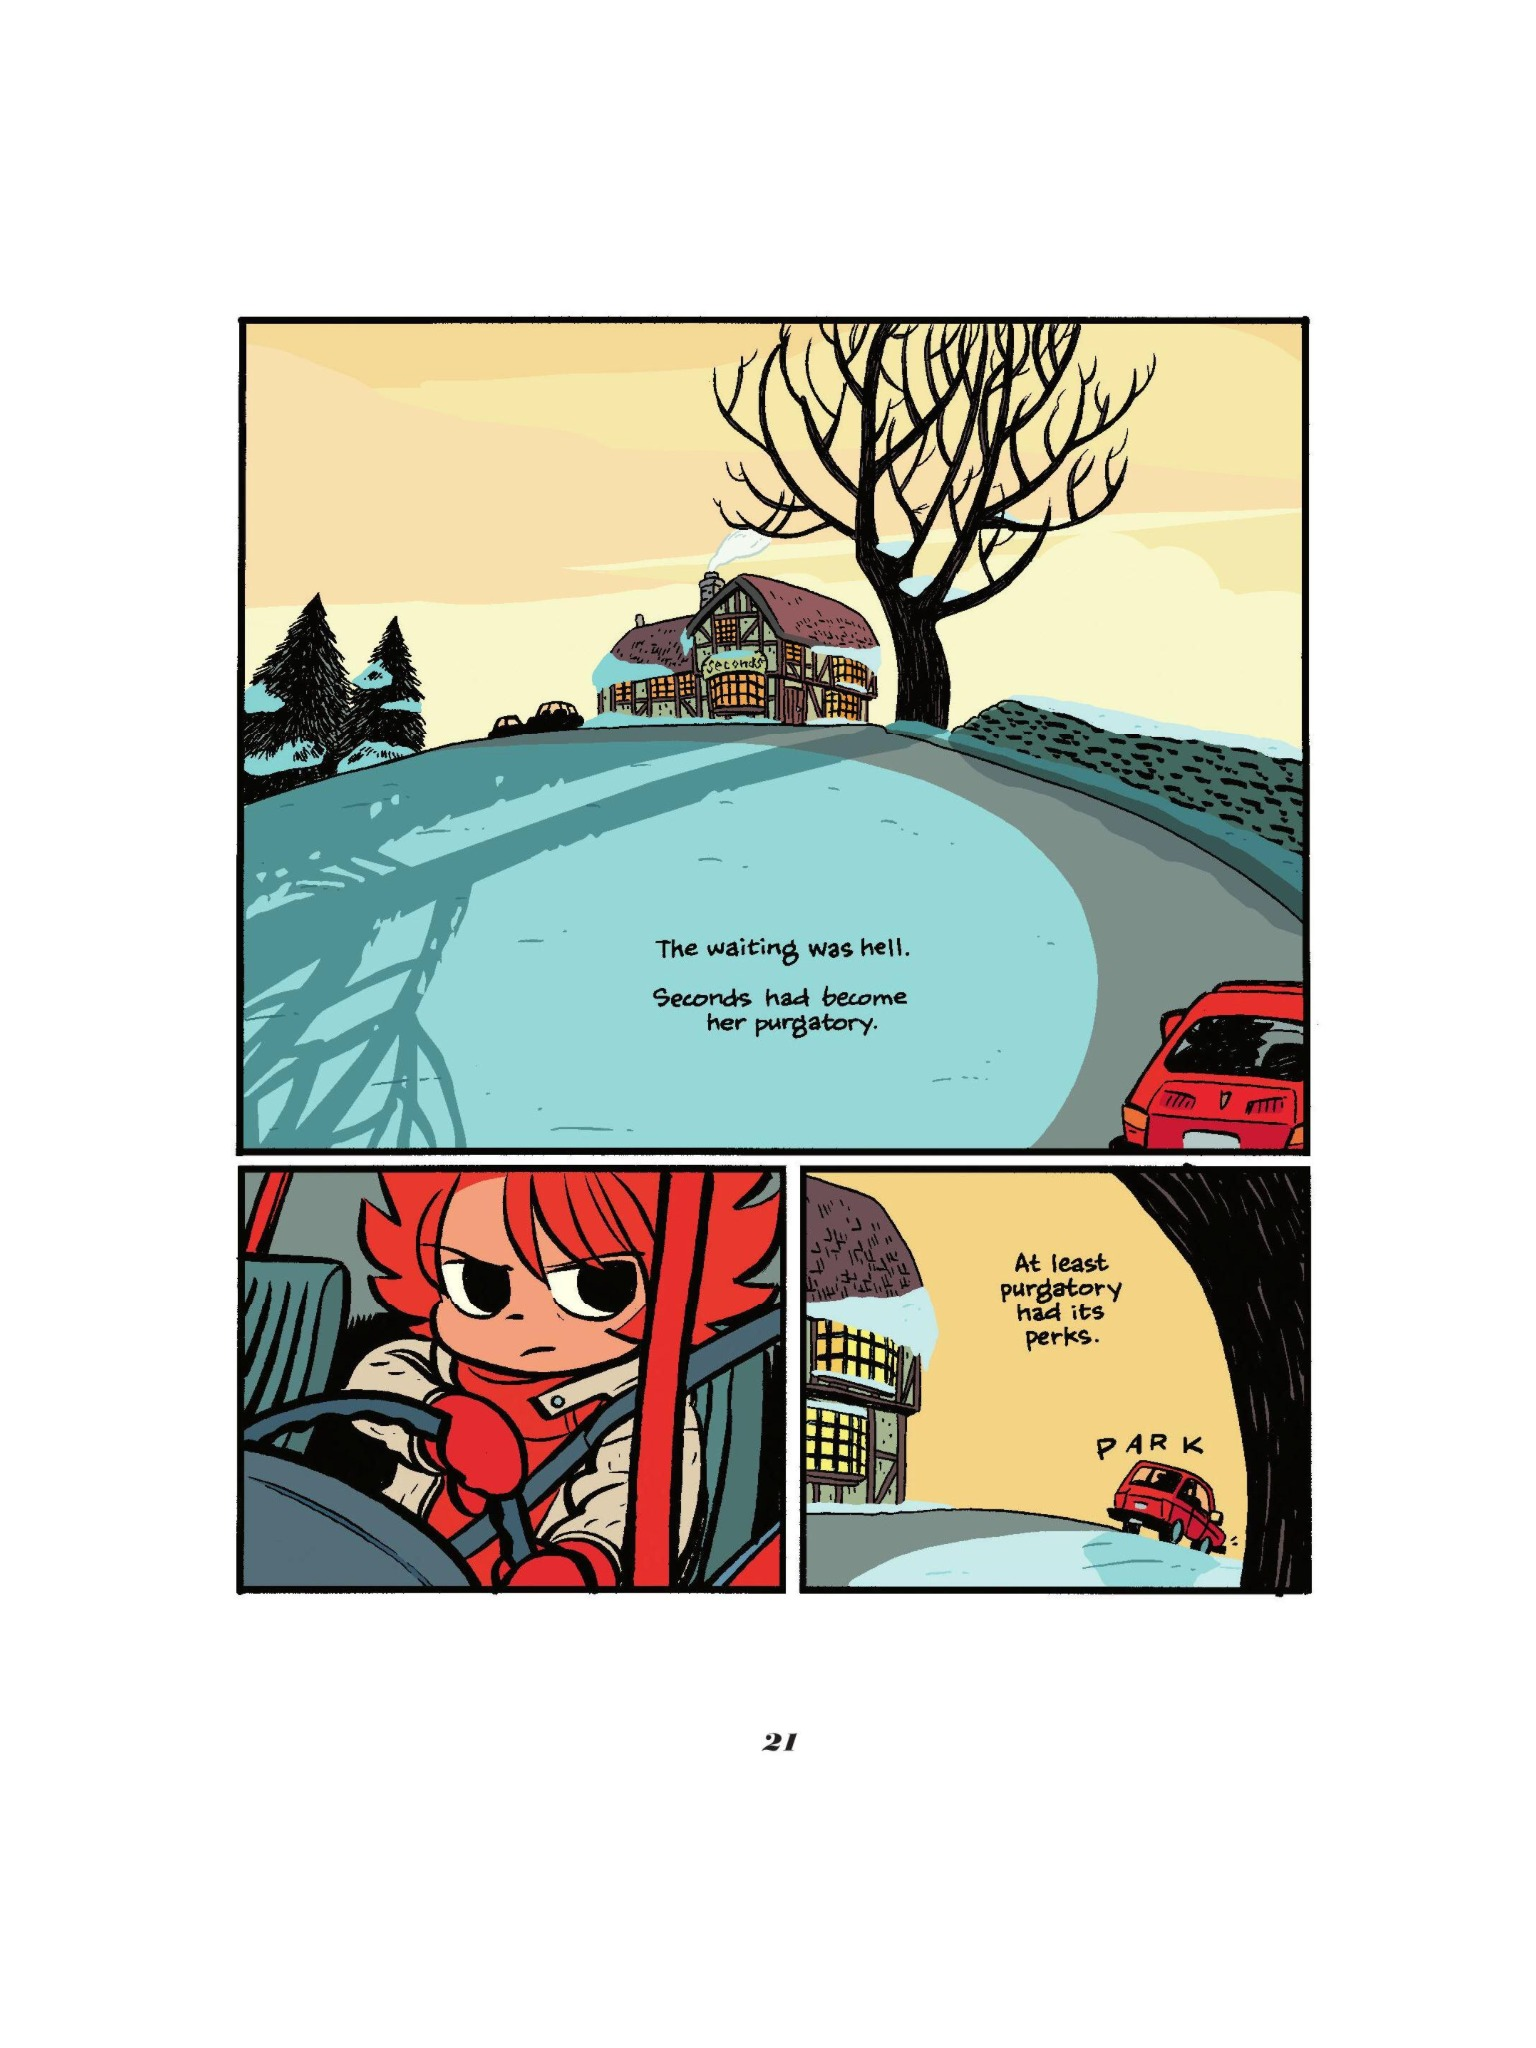 Read online Seconds comic -  Issue # Full - 23